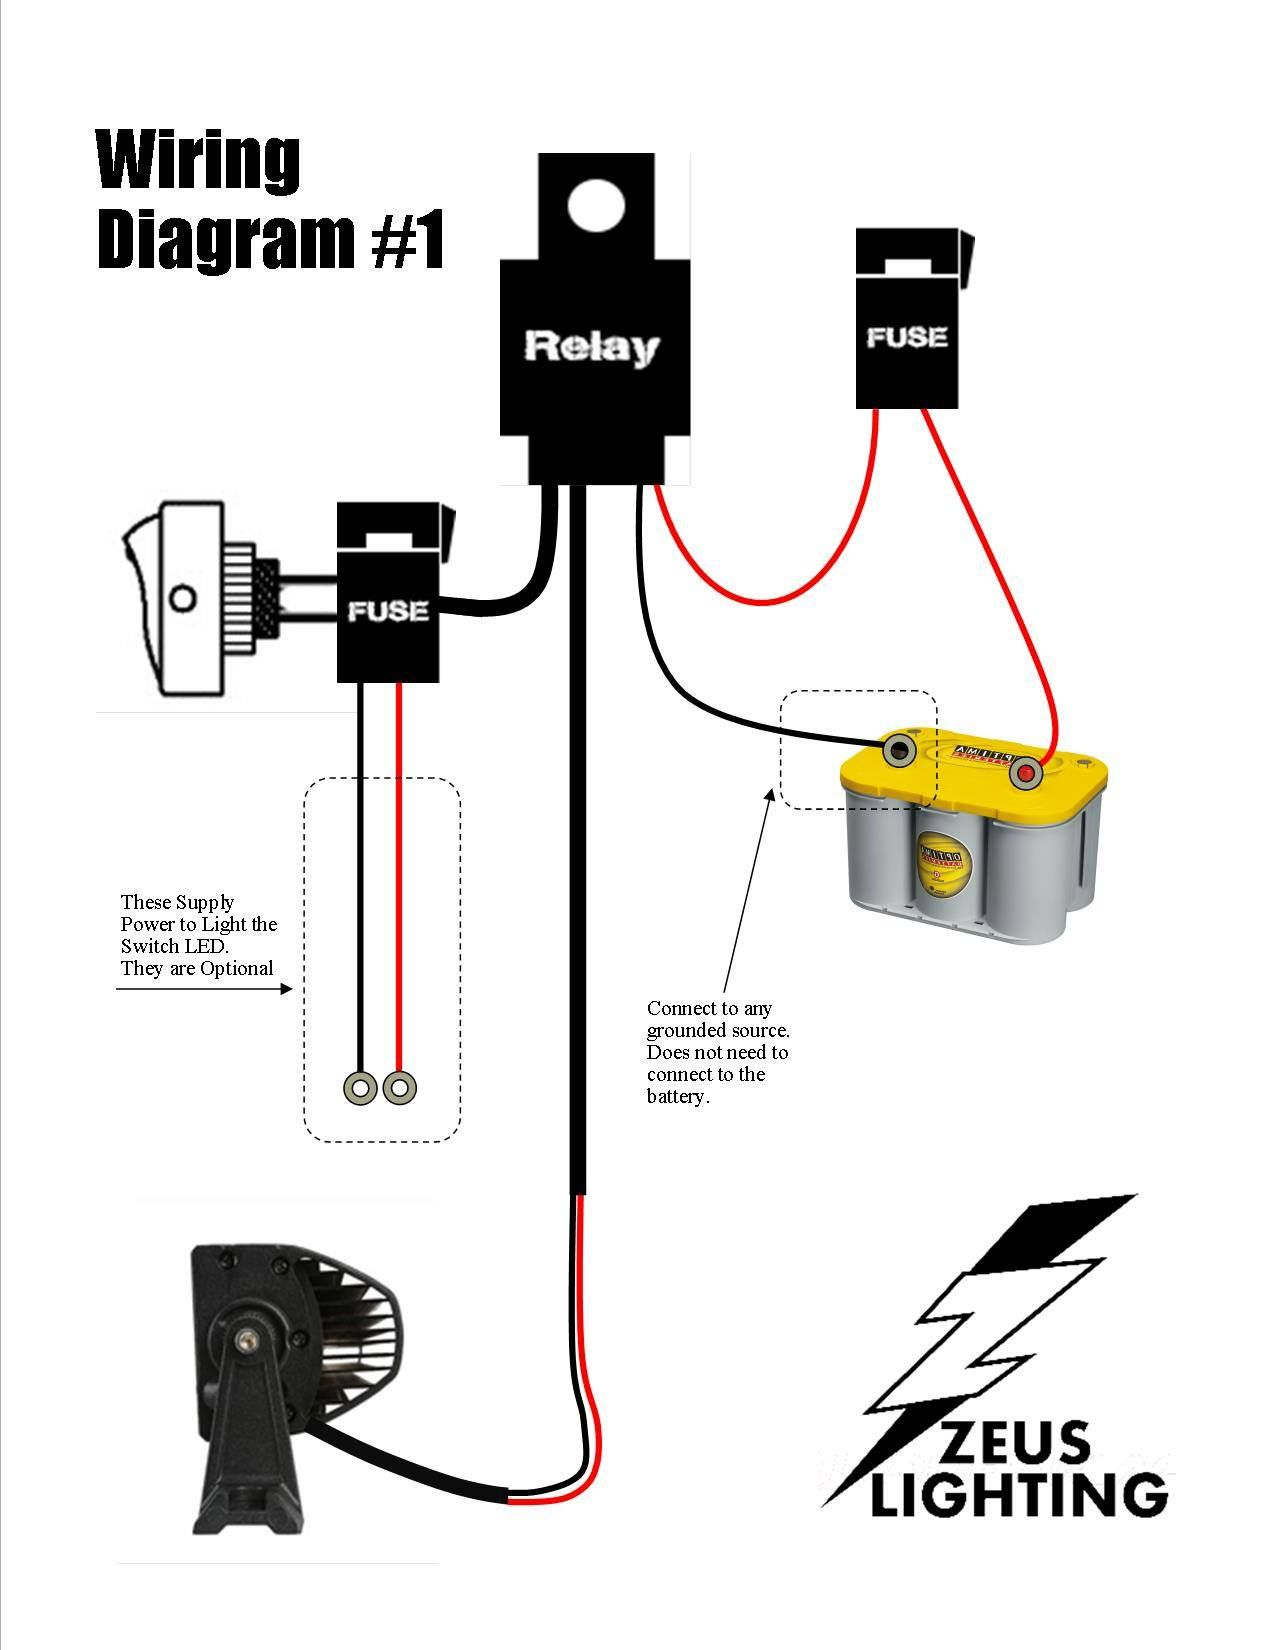 2006 toyota tacoma fog light wiring diagrams pin by patrick makowski on tractor jeep  jeep mods  pin by patrick makowski on tractor jeep  jeep mods